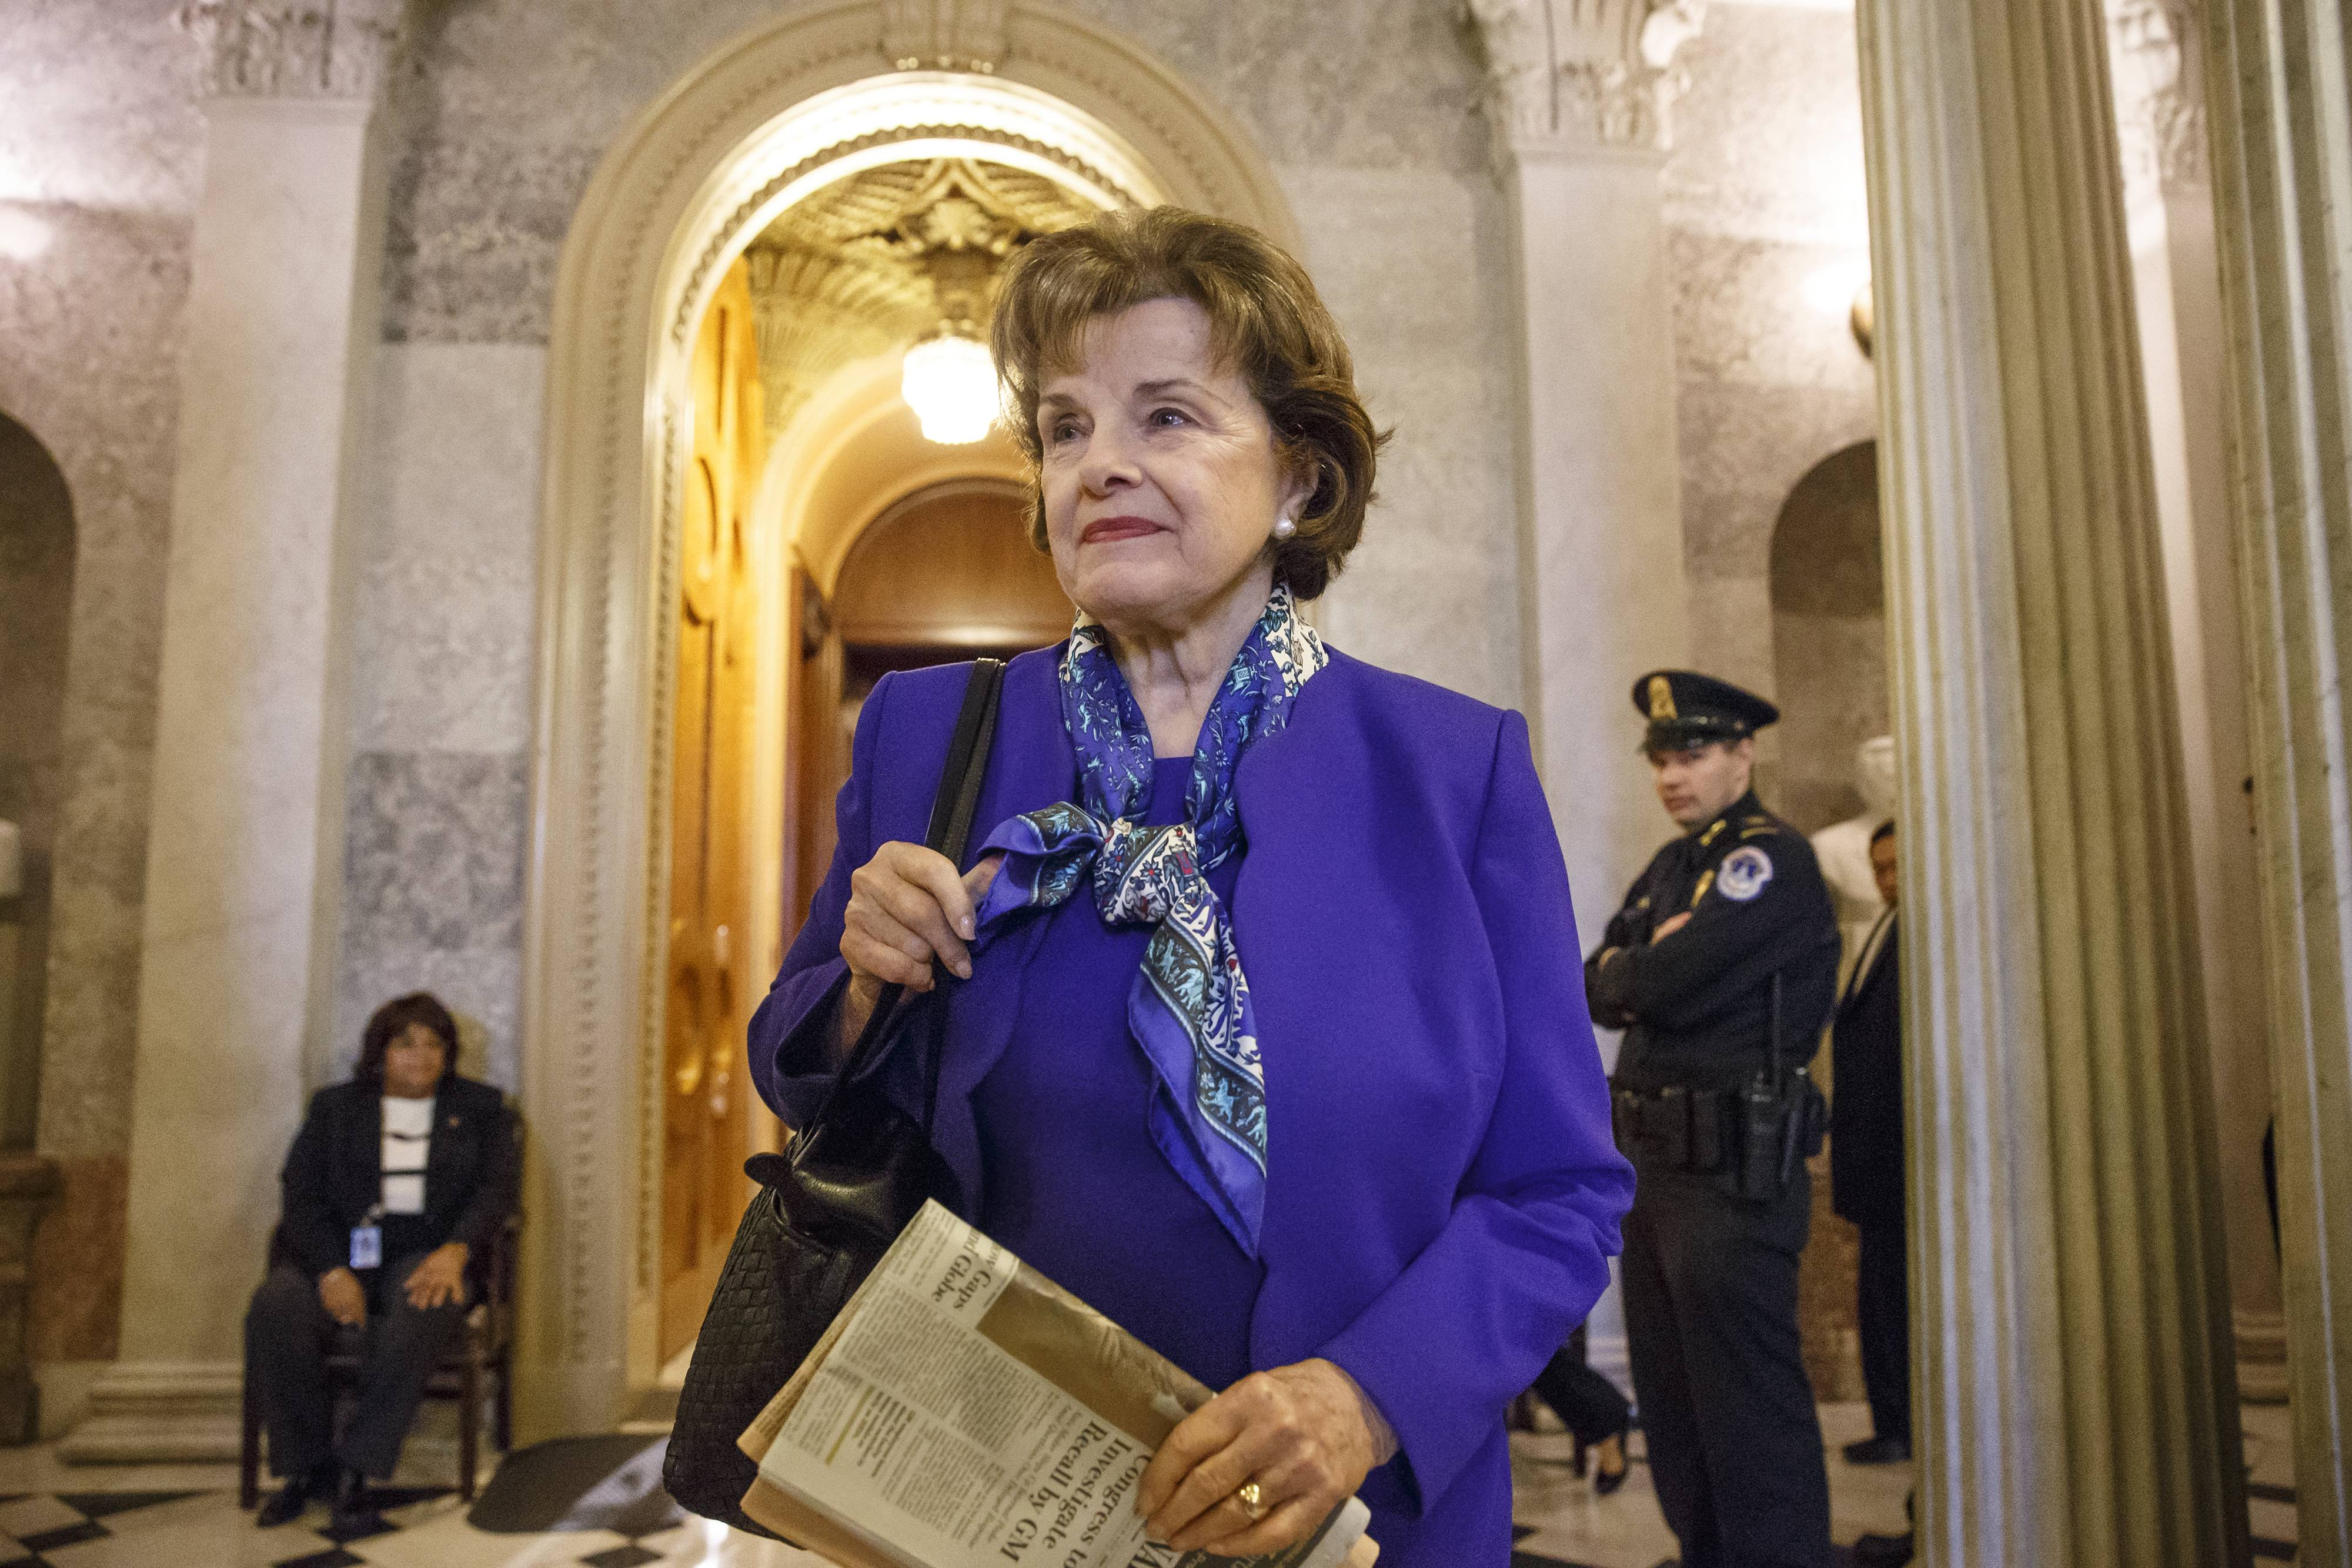 Senate Intelligence Committee Chair Sen. Dianne Feinstein, a California Democrat, accused the CIA Tuesday of criminal activity in improperly searching a computer network set up for lawmakers investigating allegations that the agency used torture in terror investigations during the Bush administration.